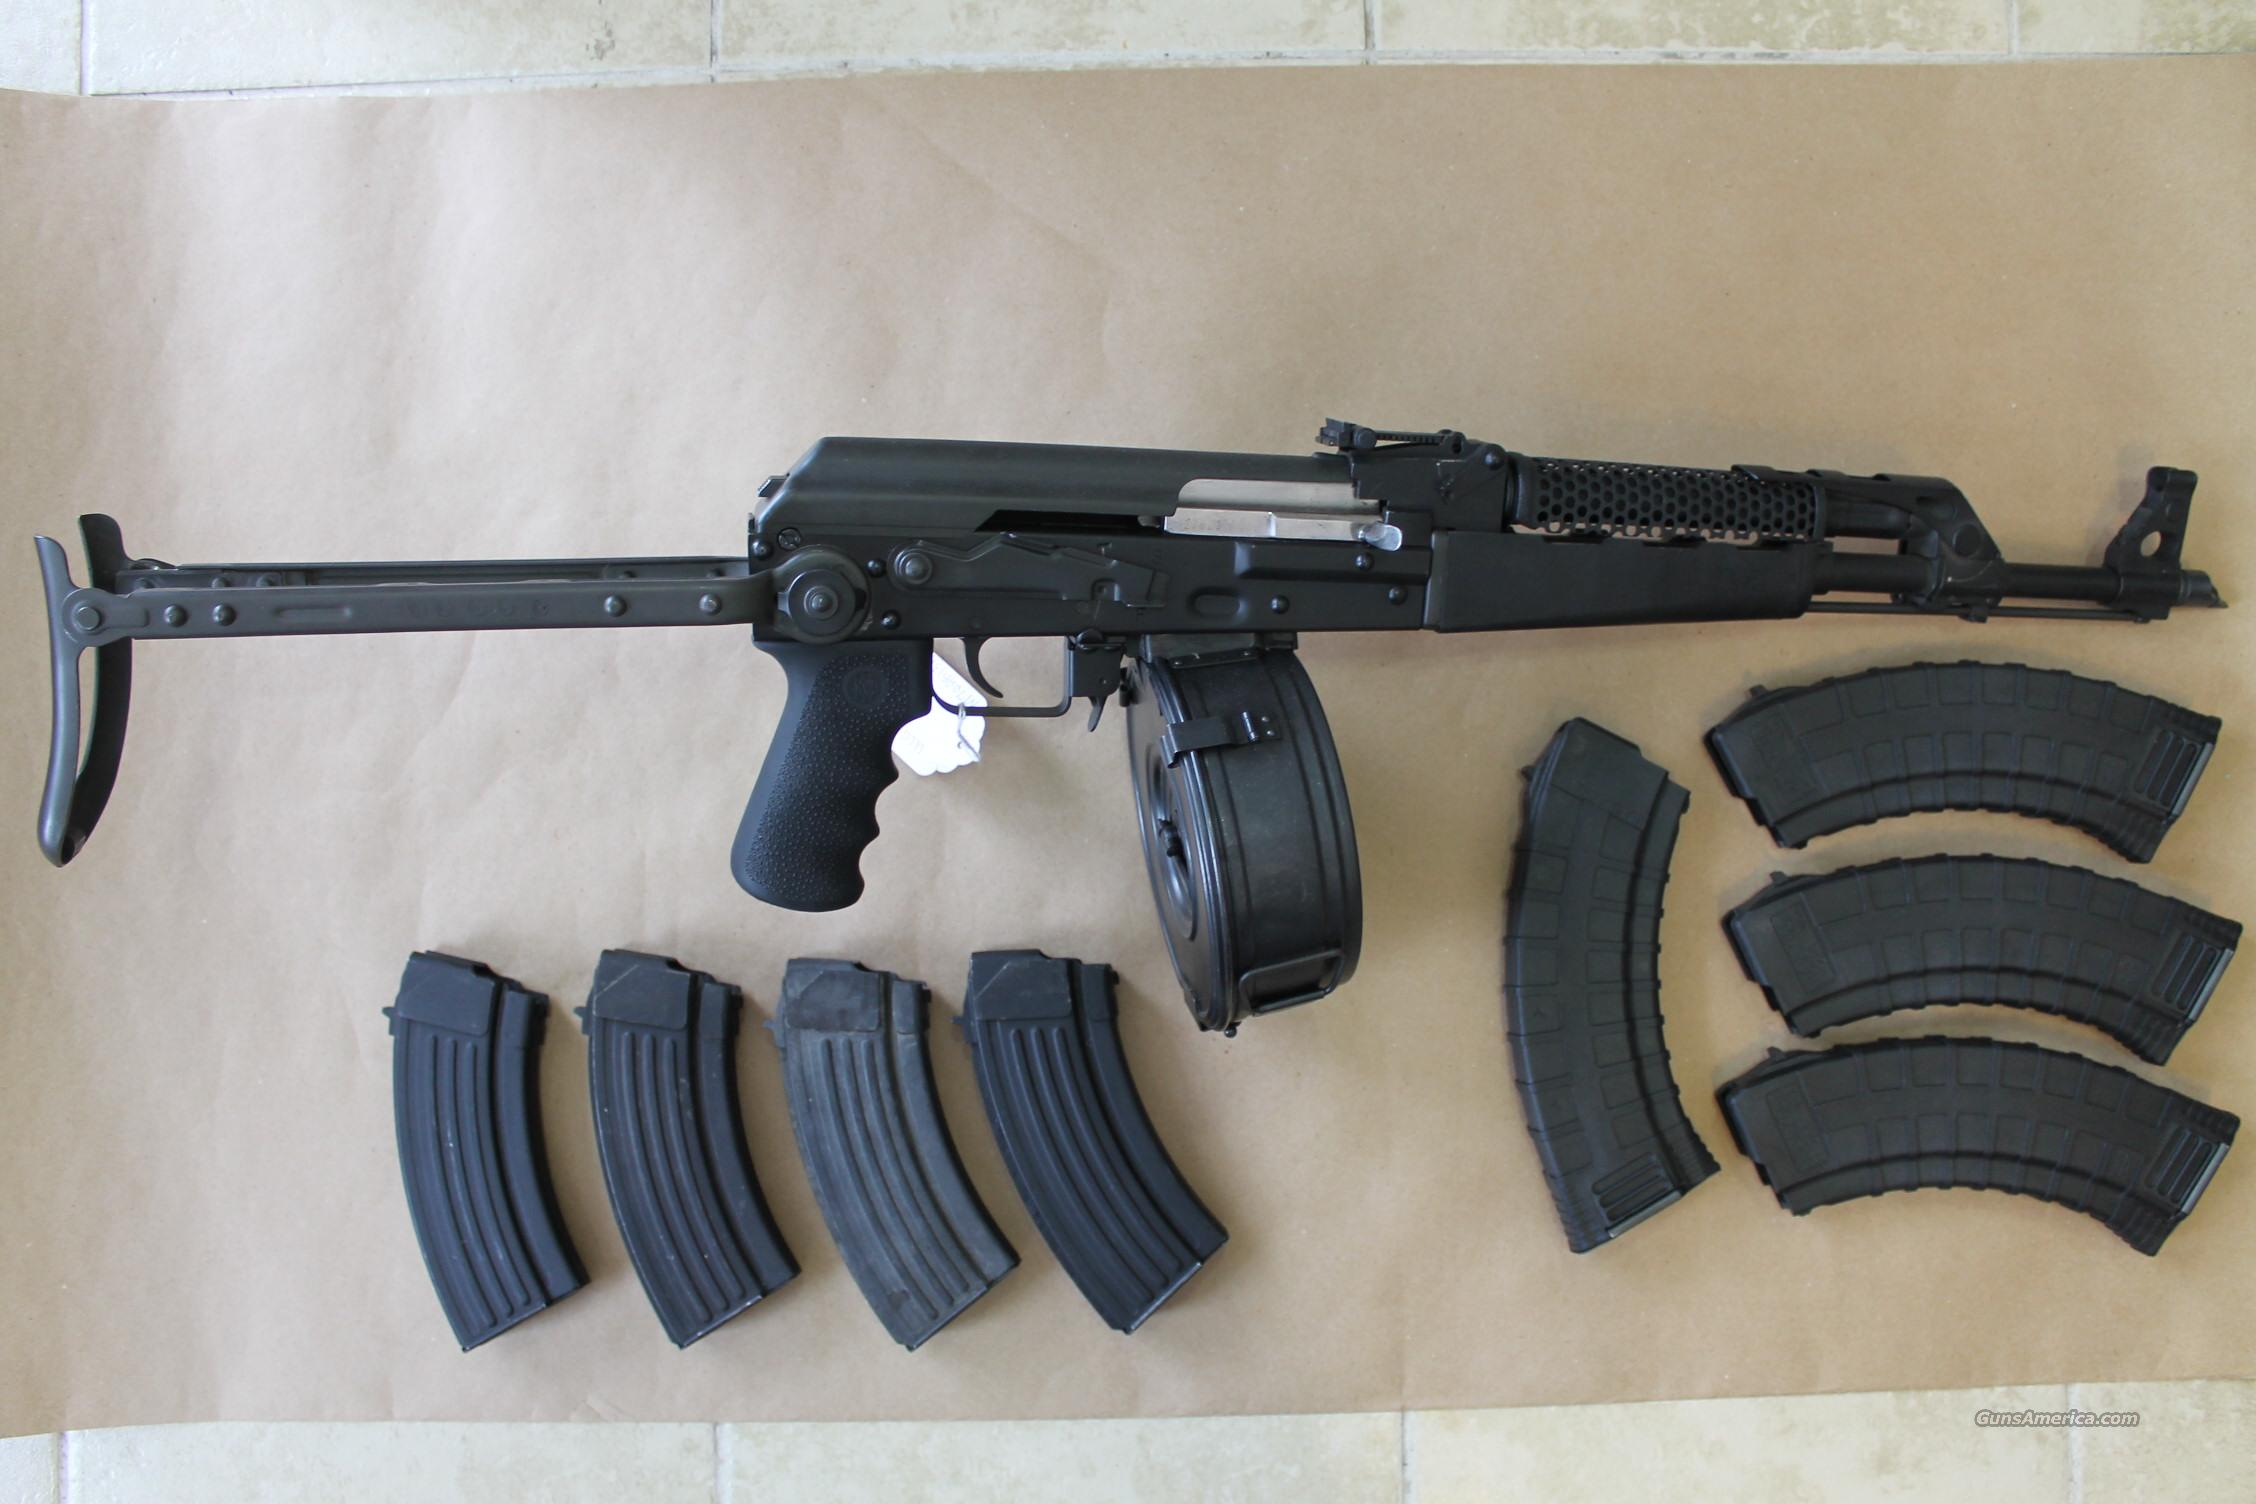 CENTURY INTERNATIONAL ARMS, INC. Model M70AB2, 7.62x39 AK-47 FOLDING STOCK RIFLE, SUPER CLEAN, WITH DRUM & 8 OTHER MAGS!!!  Guns > Rifles > Century International Arms - Rifles > Rifles